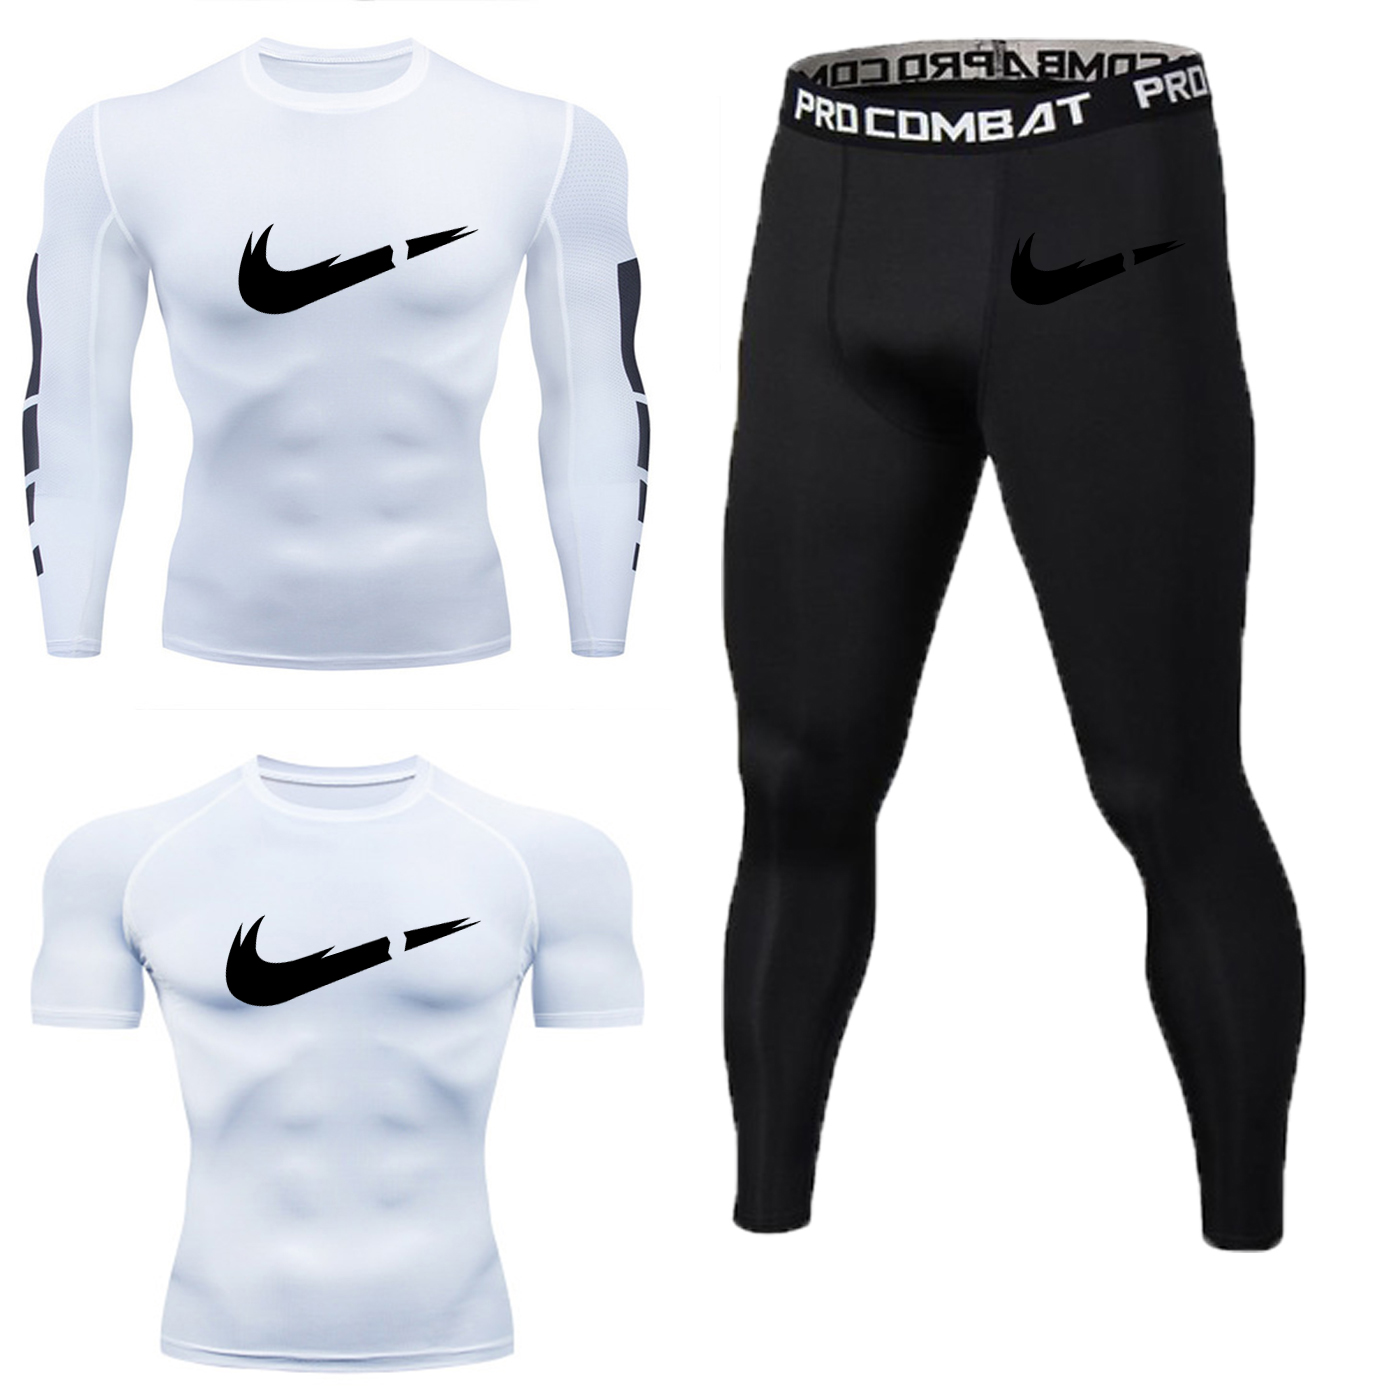 Full Set Of Men's Sportswear Fitness Sportswear Sportswear Running Jogging Sportswear Sportswear Sports Tights